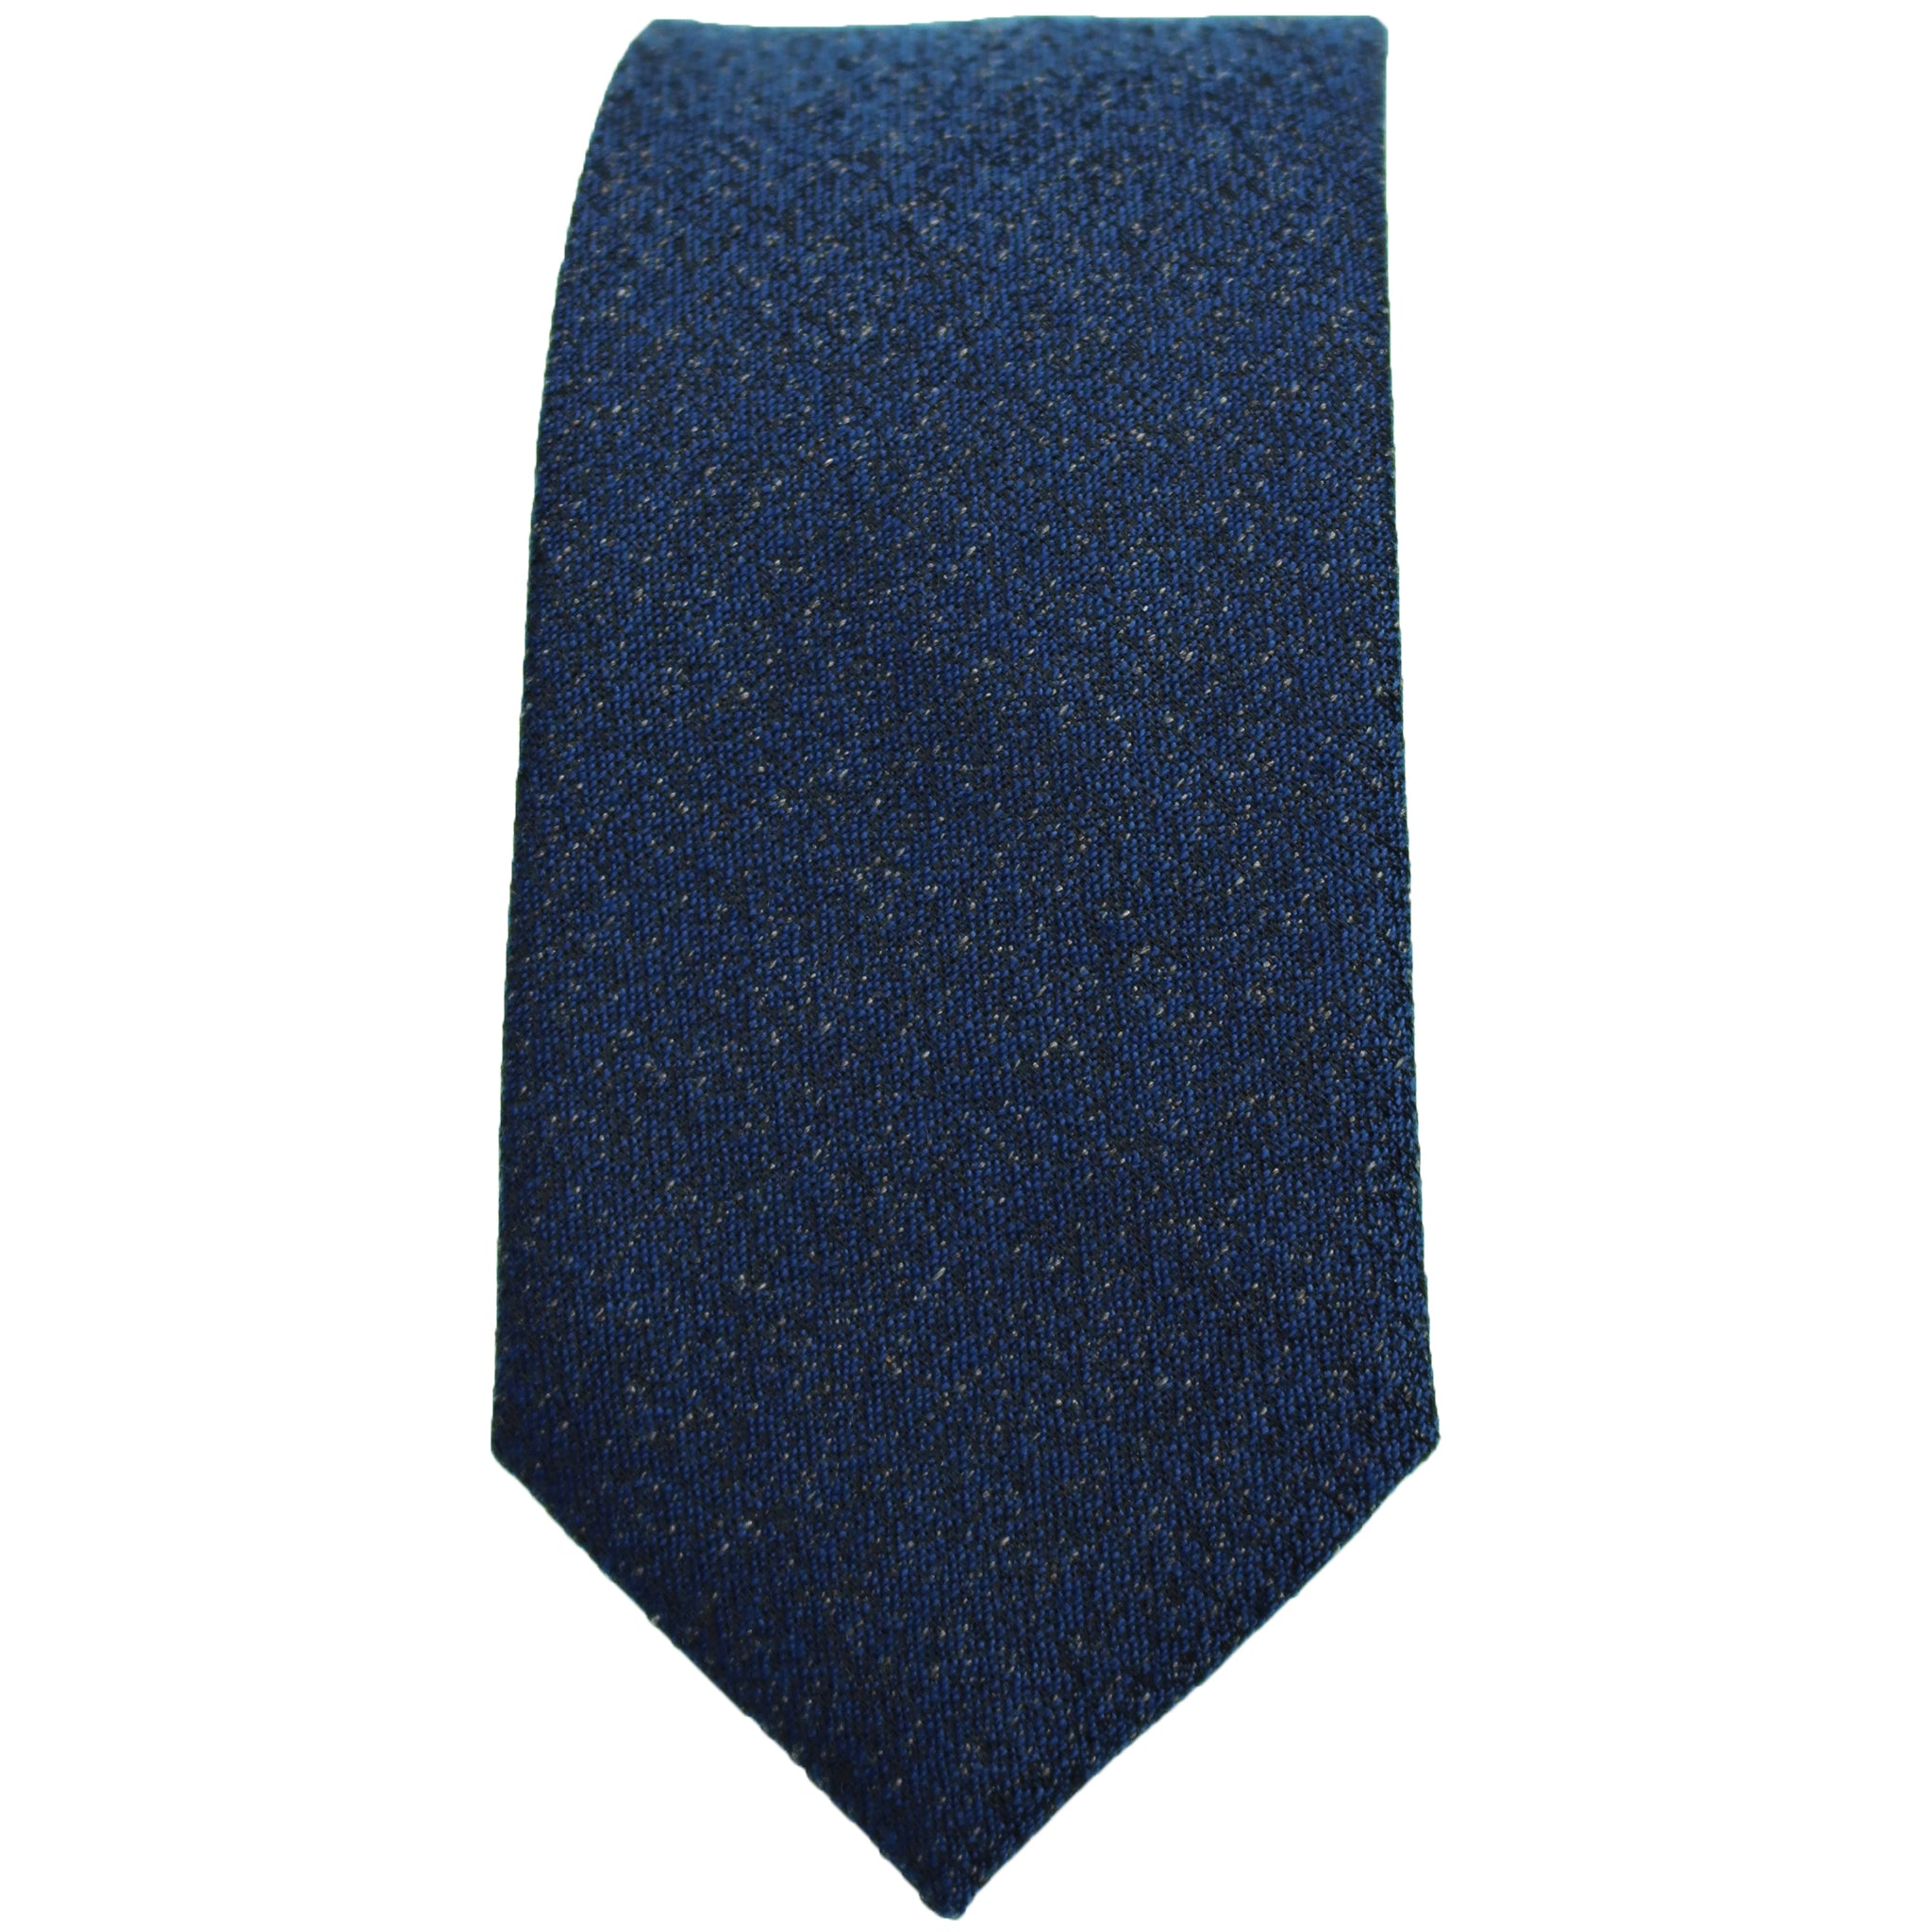 Dark Navy Textured Tie